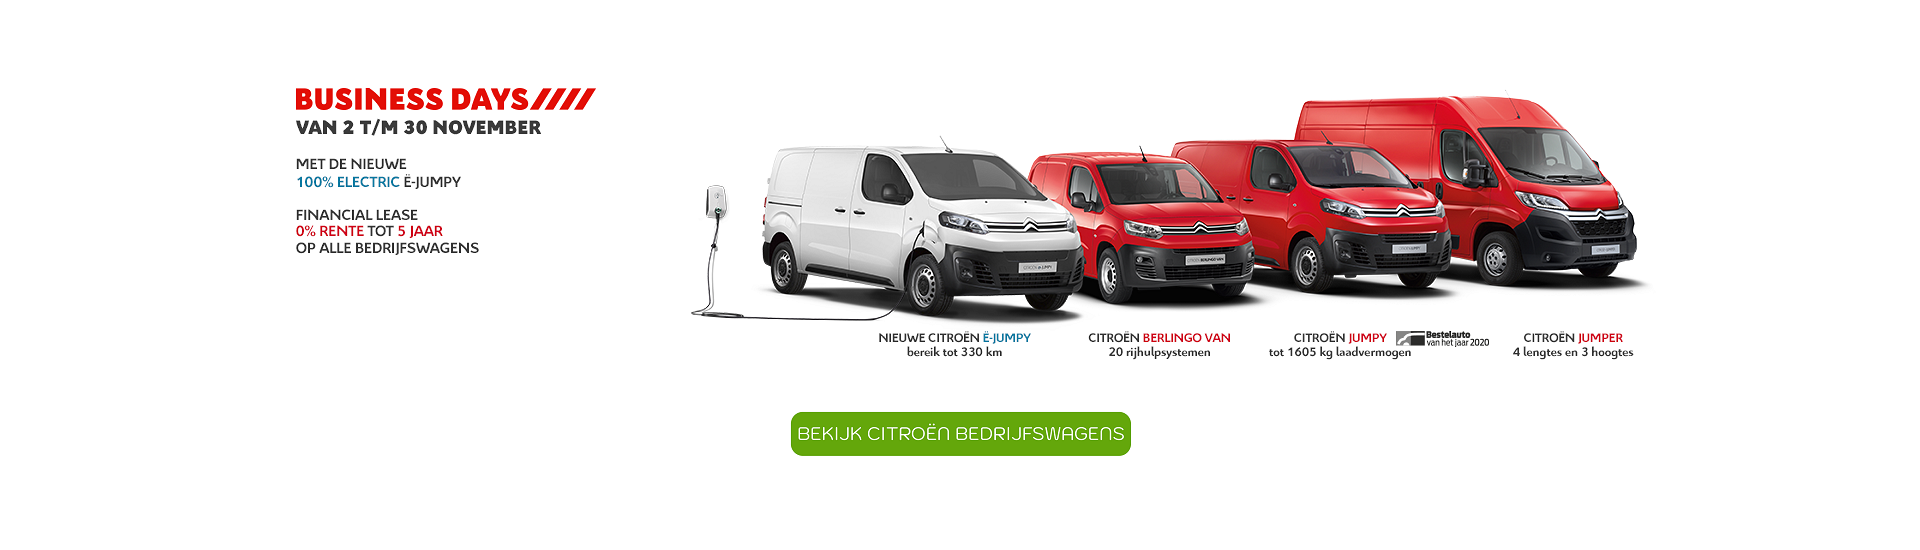 Header home Citroen Business Days 11-2020